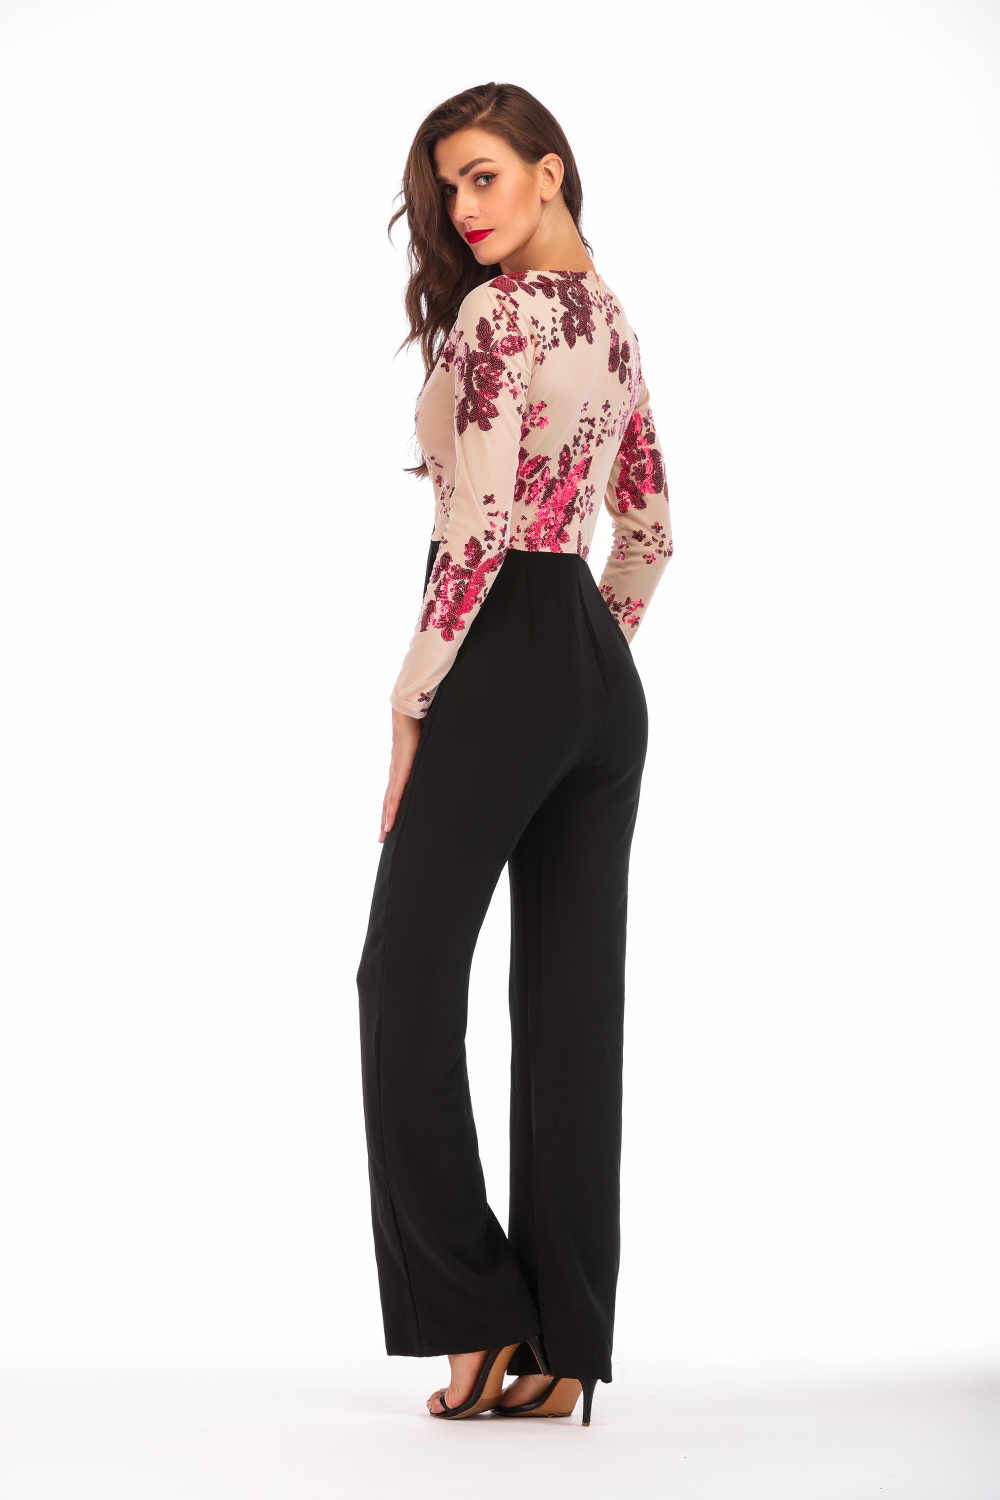 044f16135b ... Sexy Sequins Patchwork rompers womens jumpsuit 2018 bodysuit women  Summer Elegant long sleeves V neck Party ...